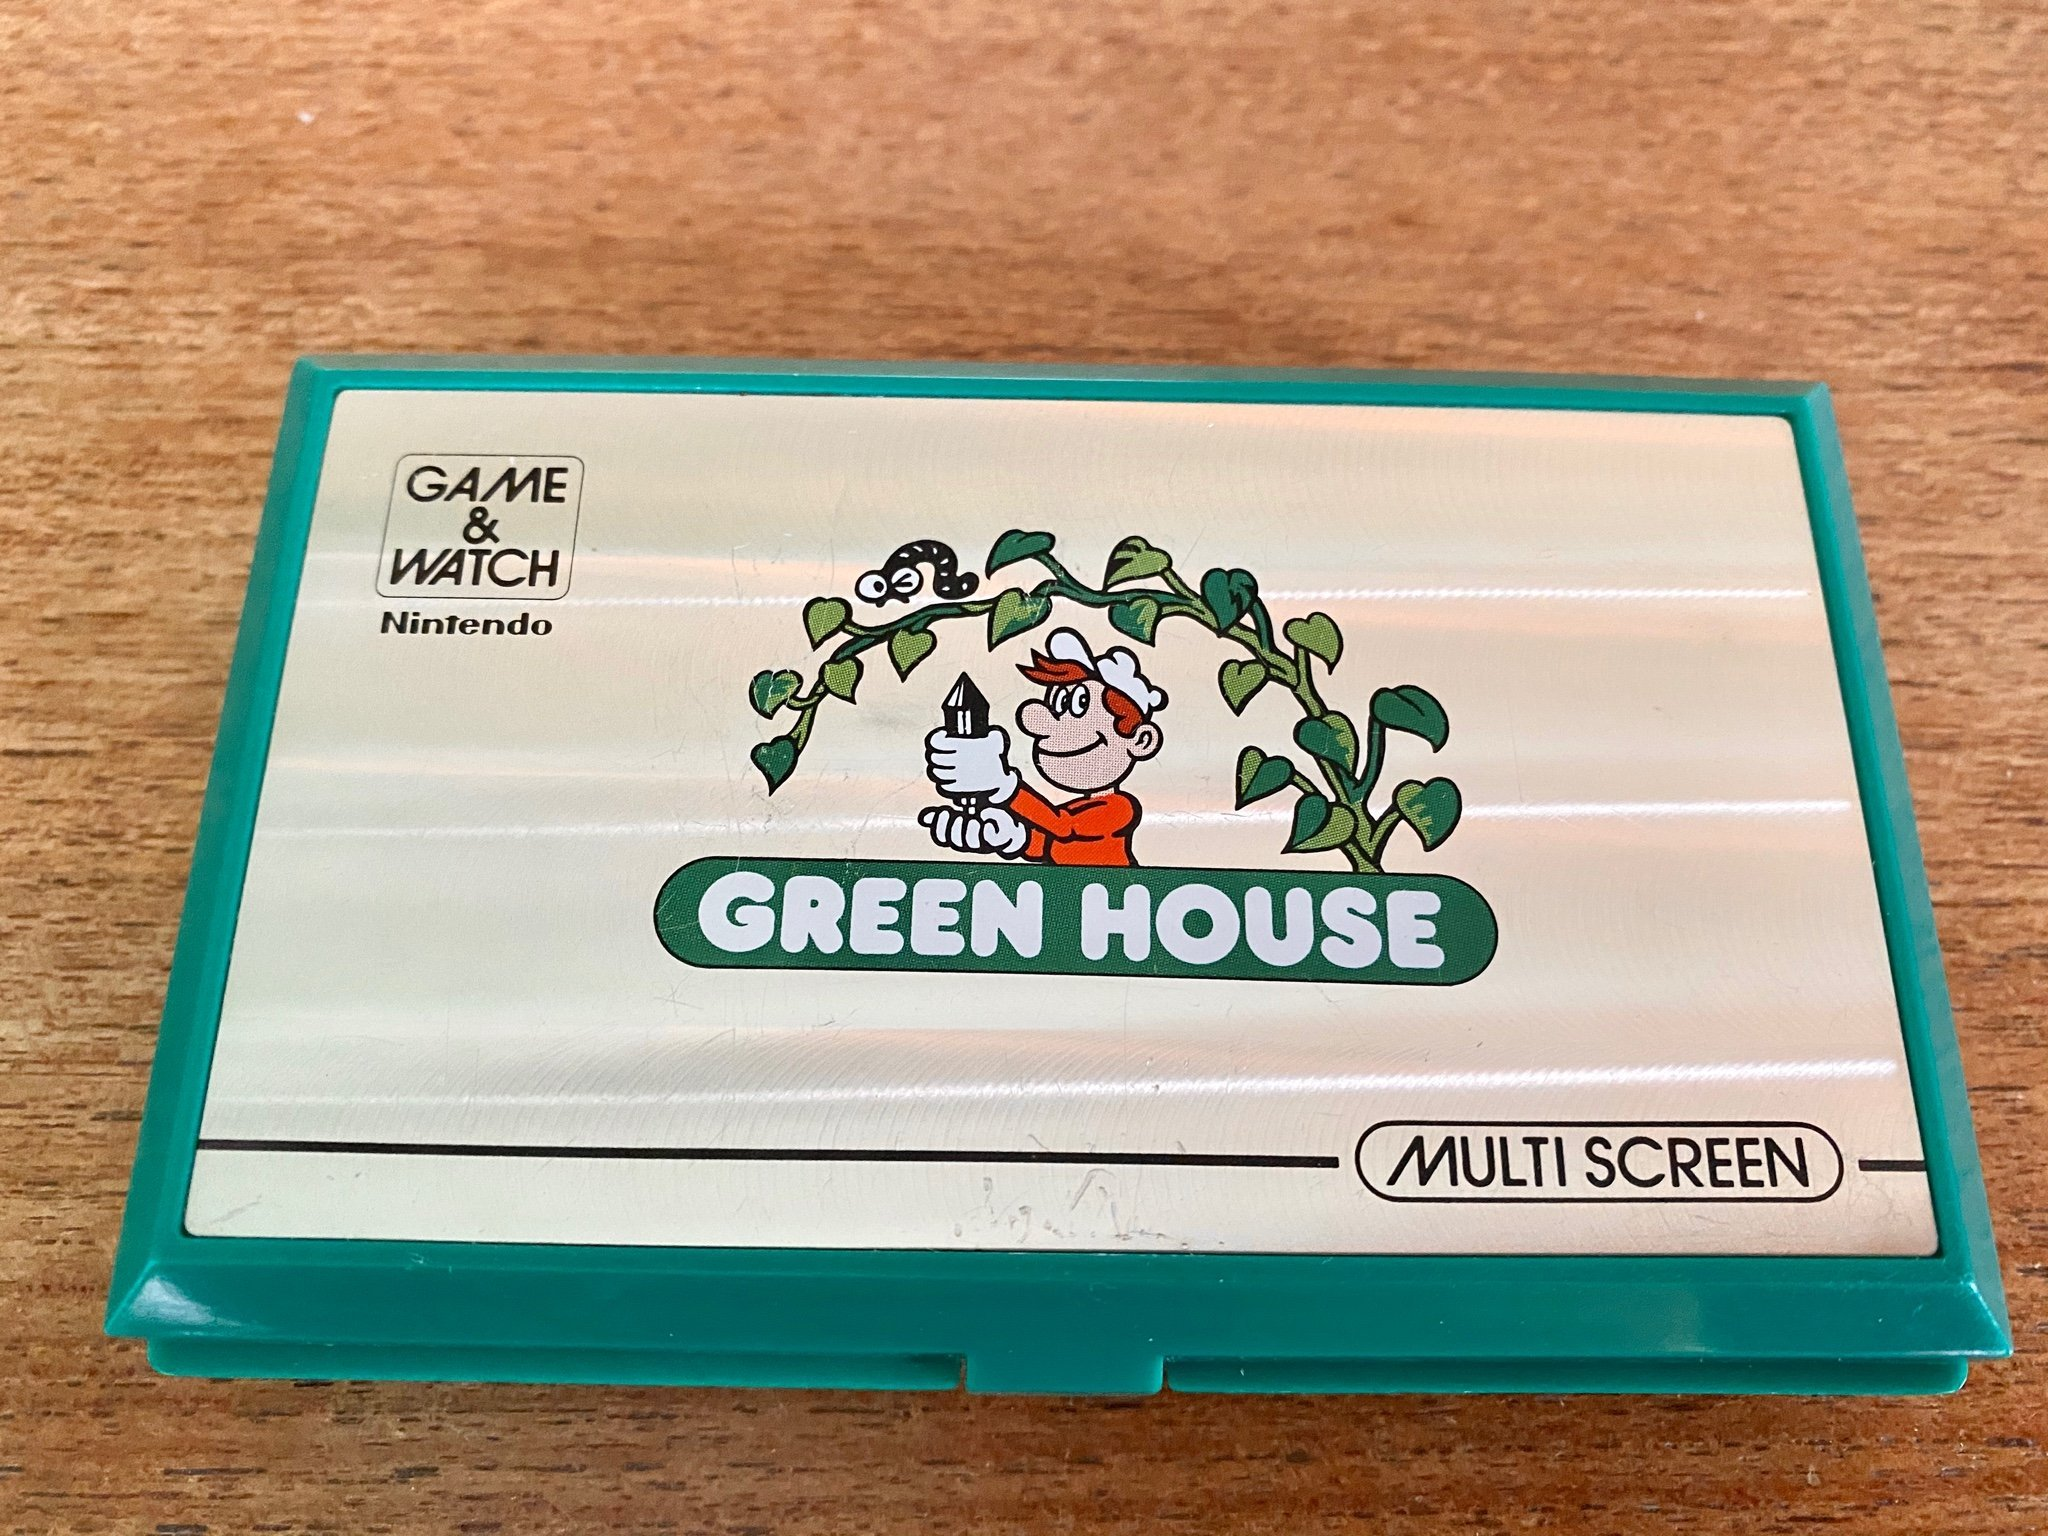 Nintendo Game & Watch Green House